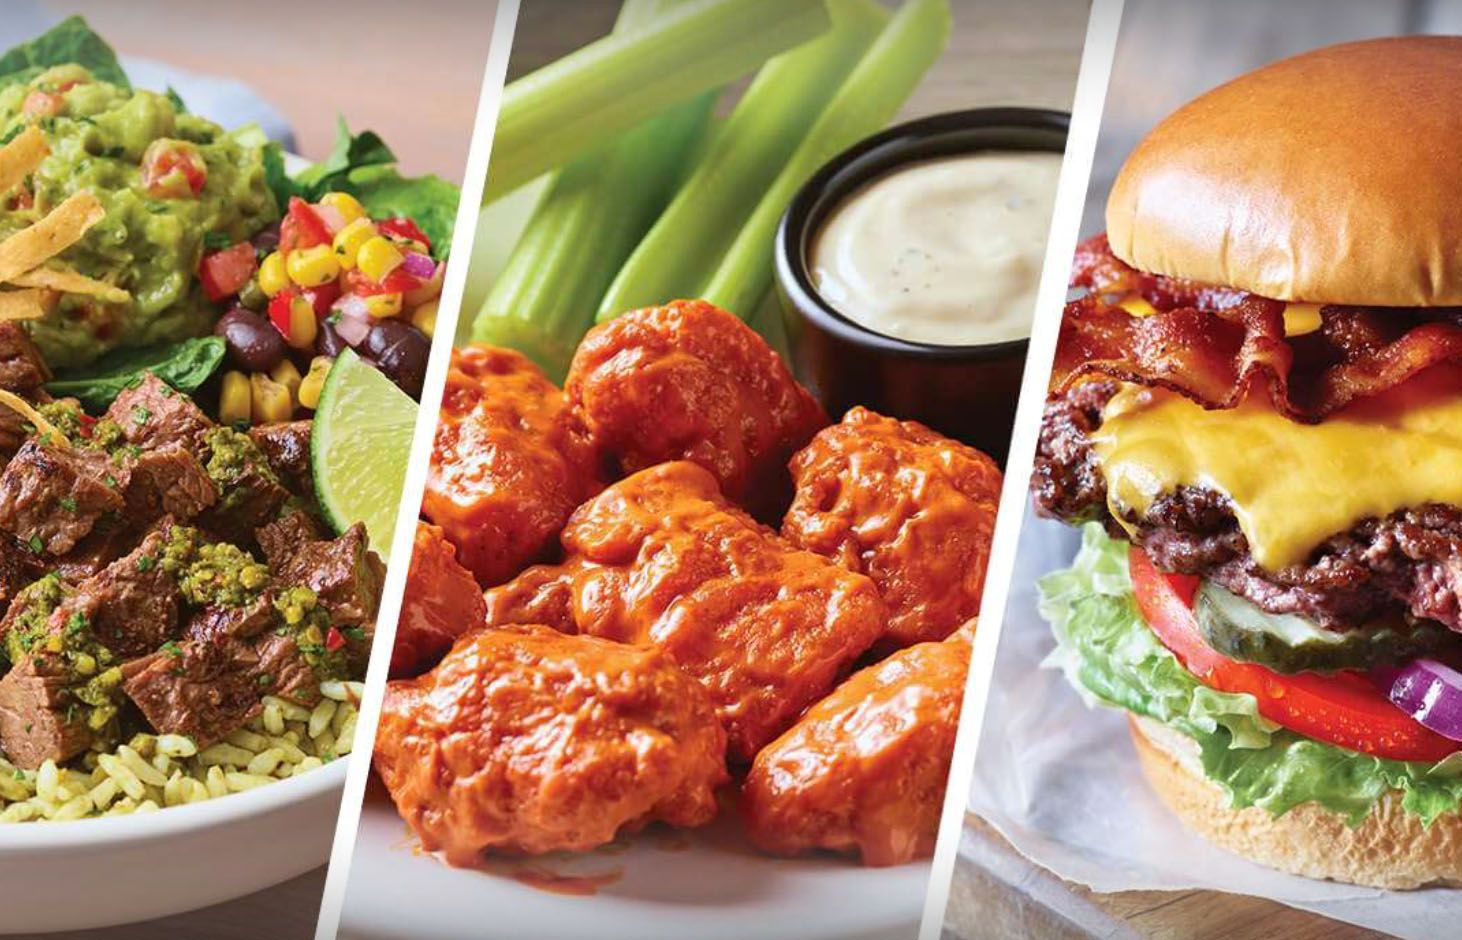 New Southwest Steak Bowl Joins the Entrees on Applebee's 2 for $20 Menu